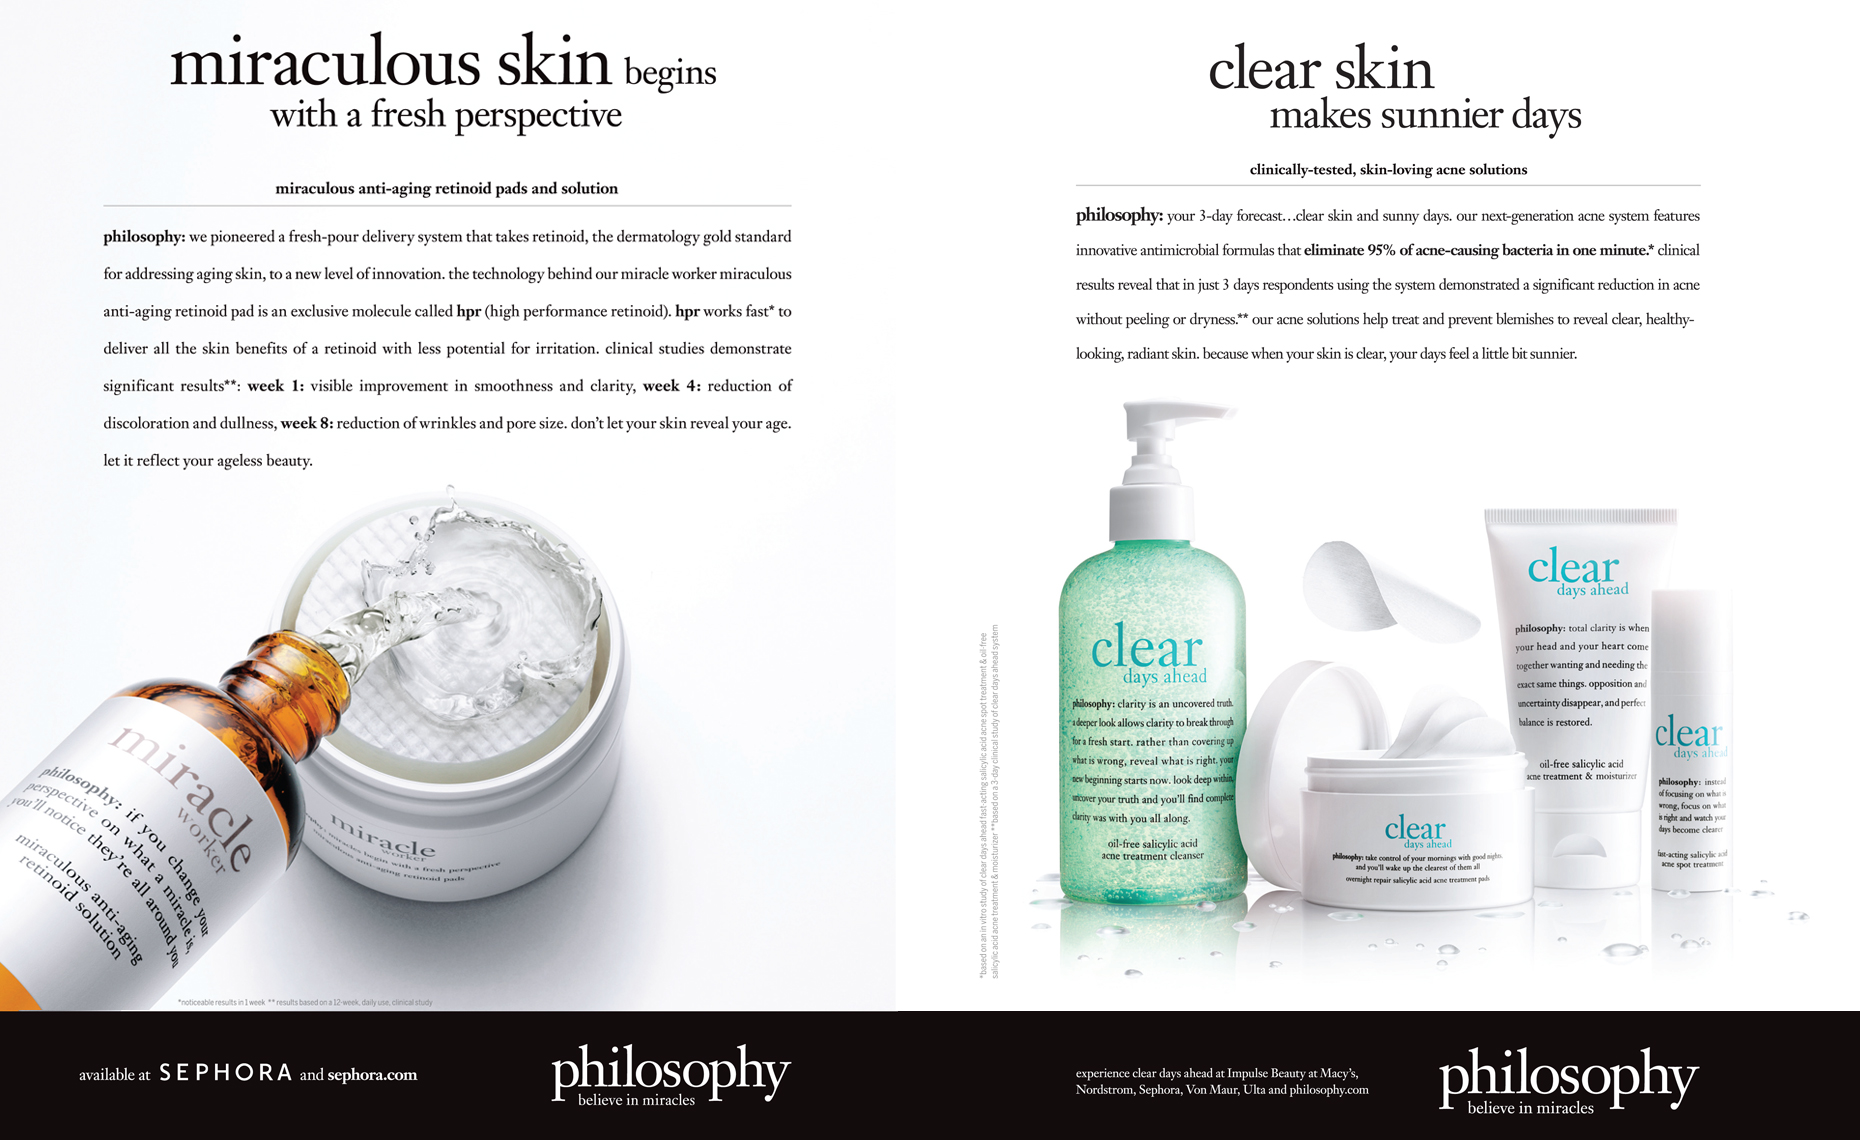 Philosophy cosmetics 1